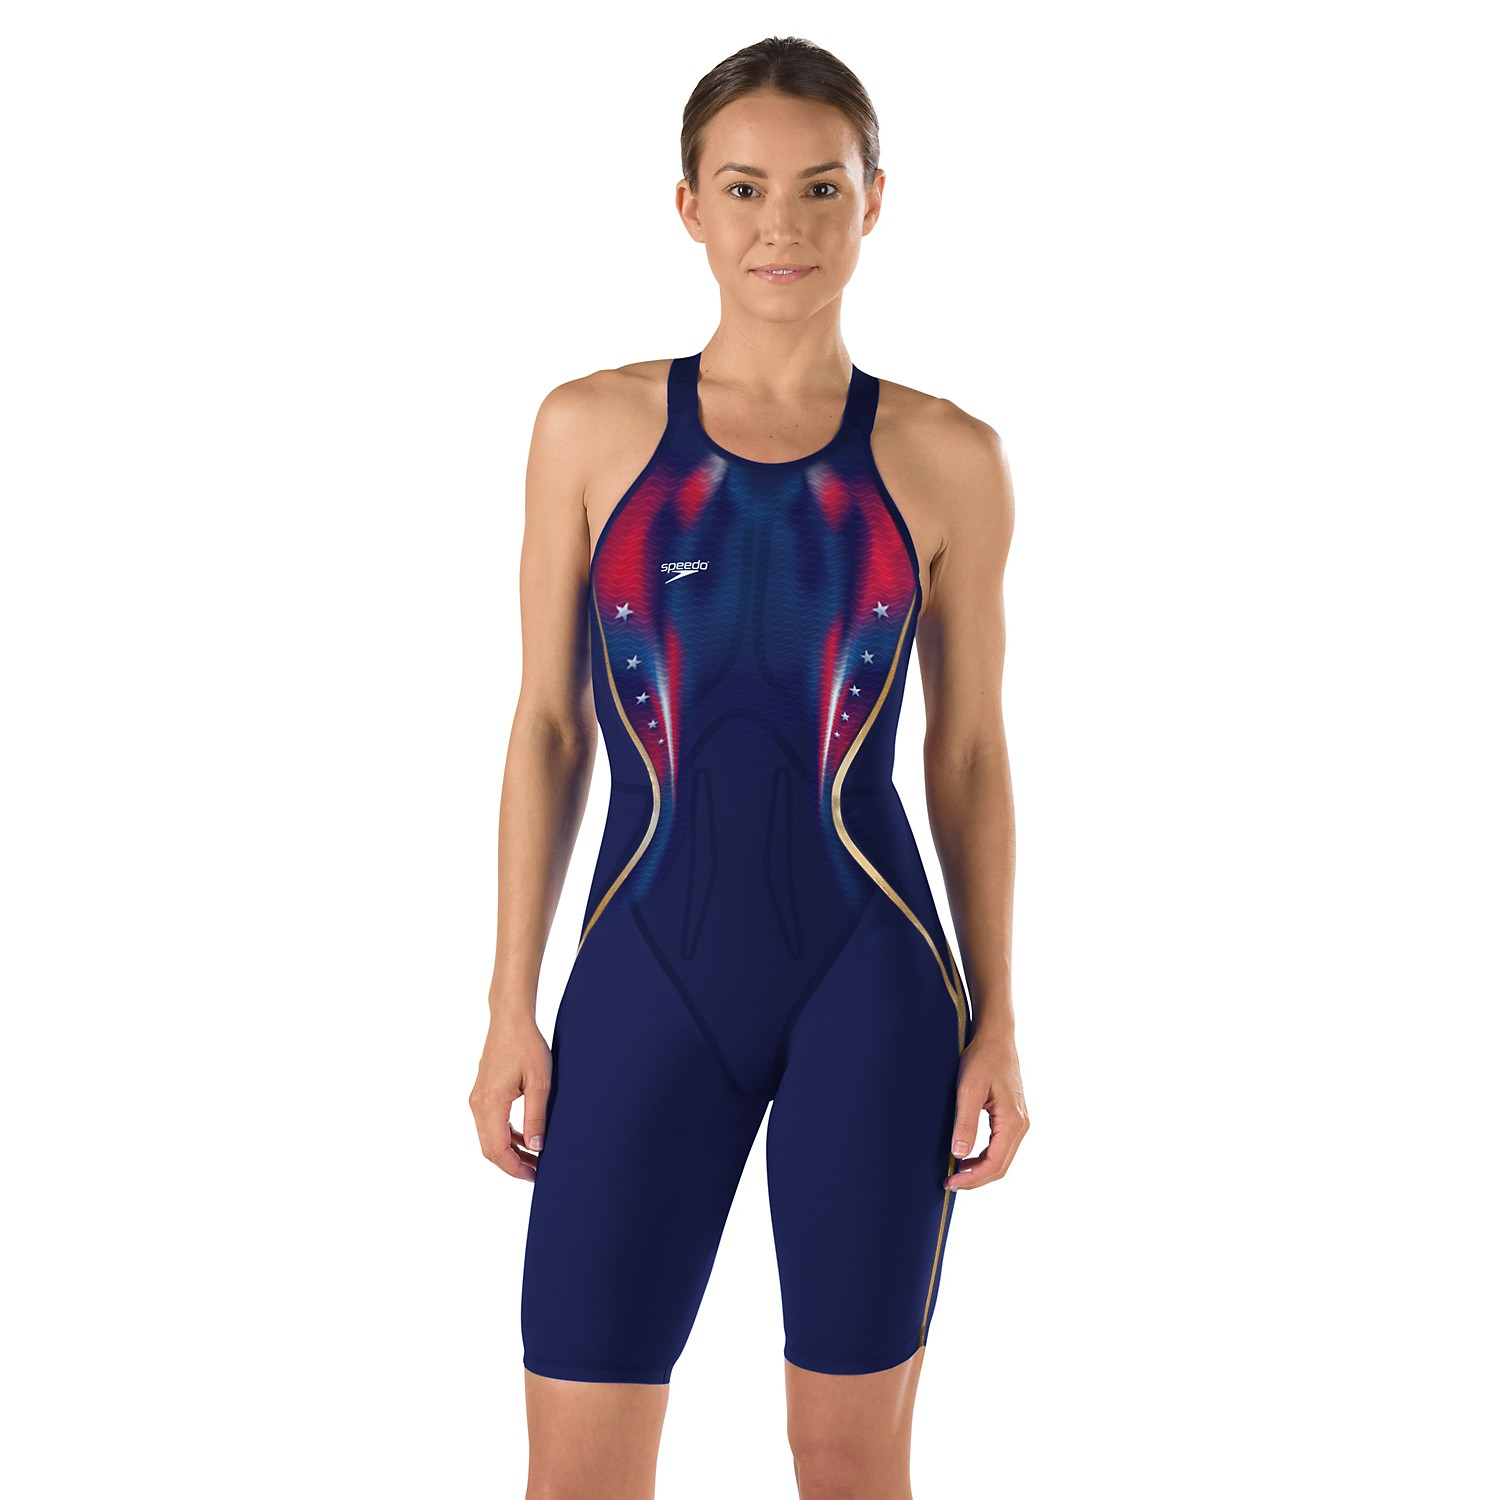 SPEEDO LZR Racer X Printed Kneeskin (Navy/Red/White (410))